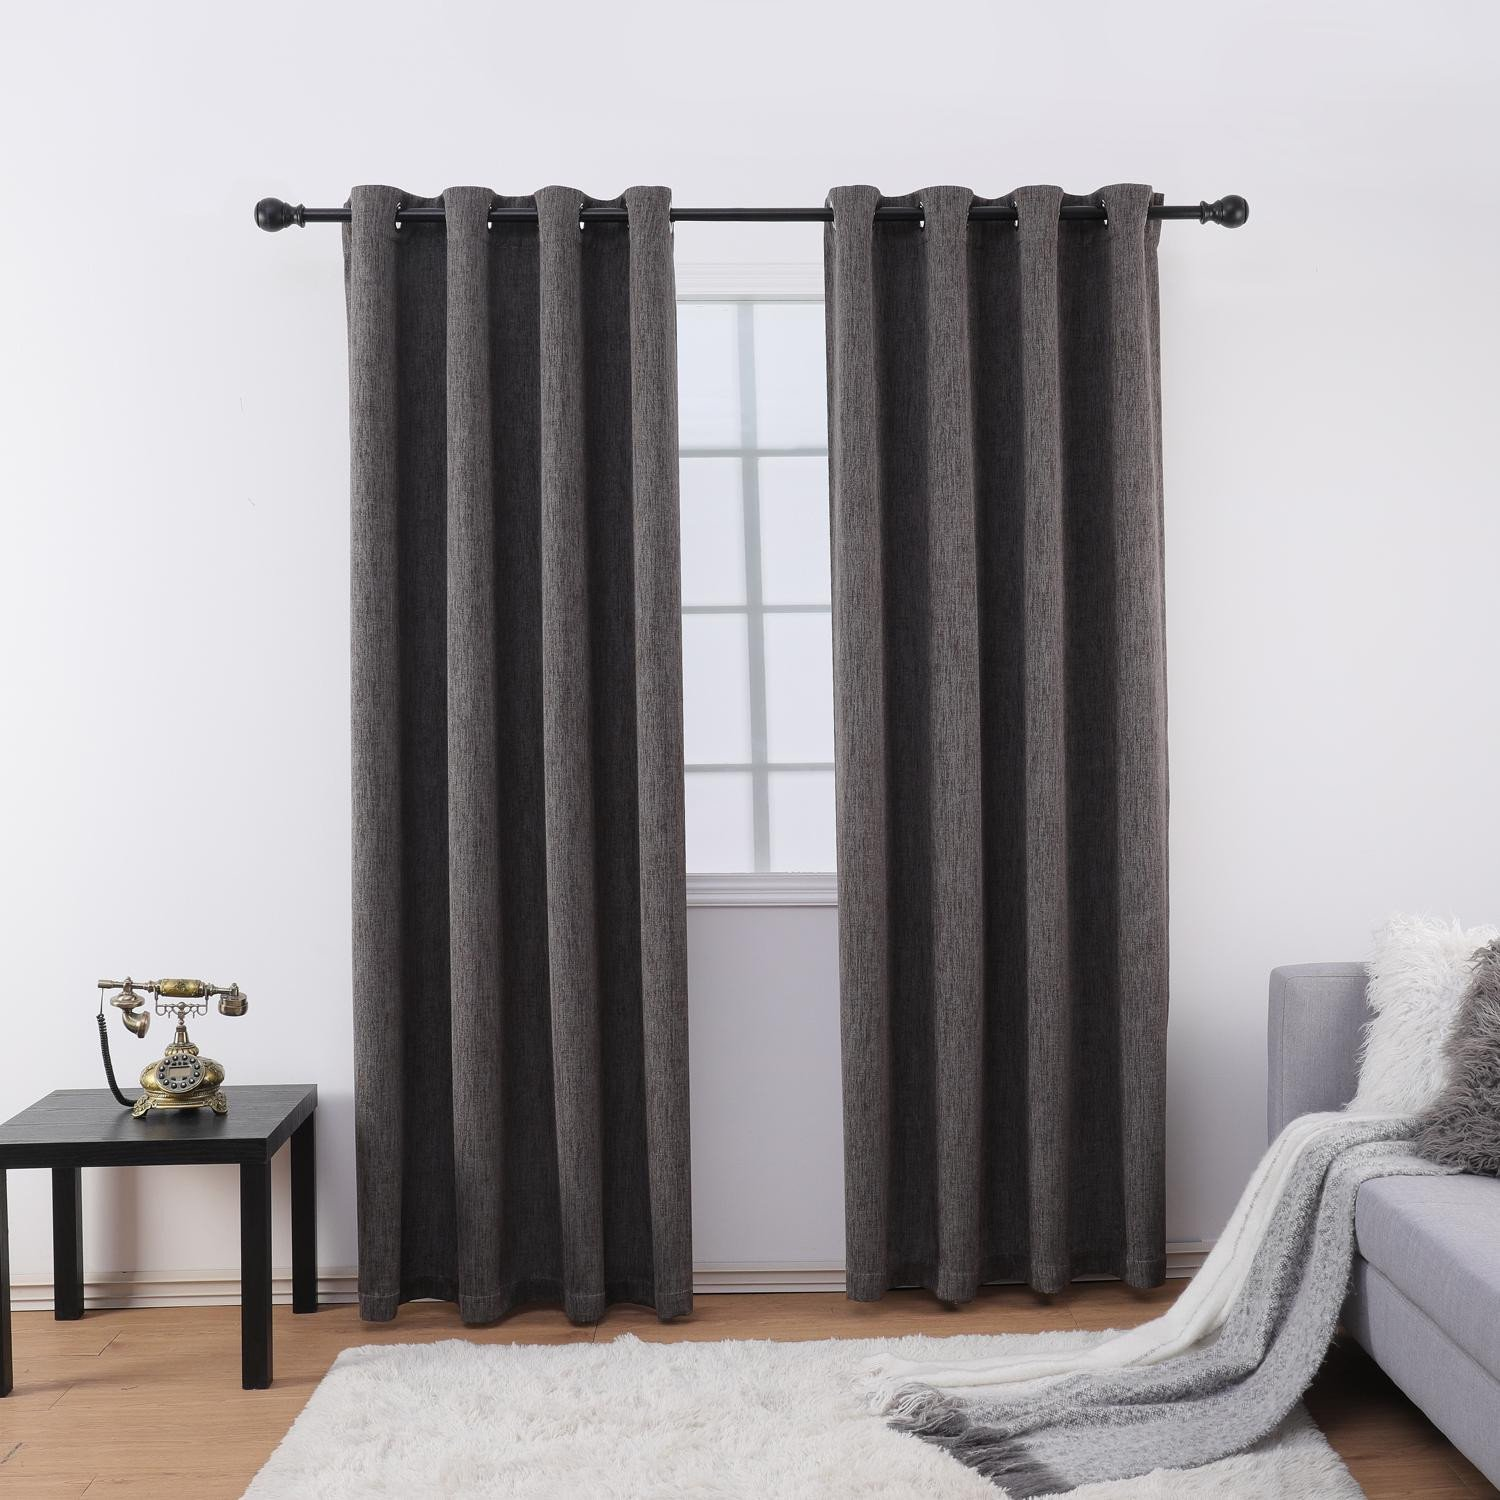 Grey Curtains for Bedroom Best Of 2019 Jarl Home Blackout Curtains for Living Room 2 Panels Curtain for Bedroom Grommets top Kitchen Window Curtains From Jarlhome $27 68